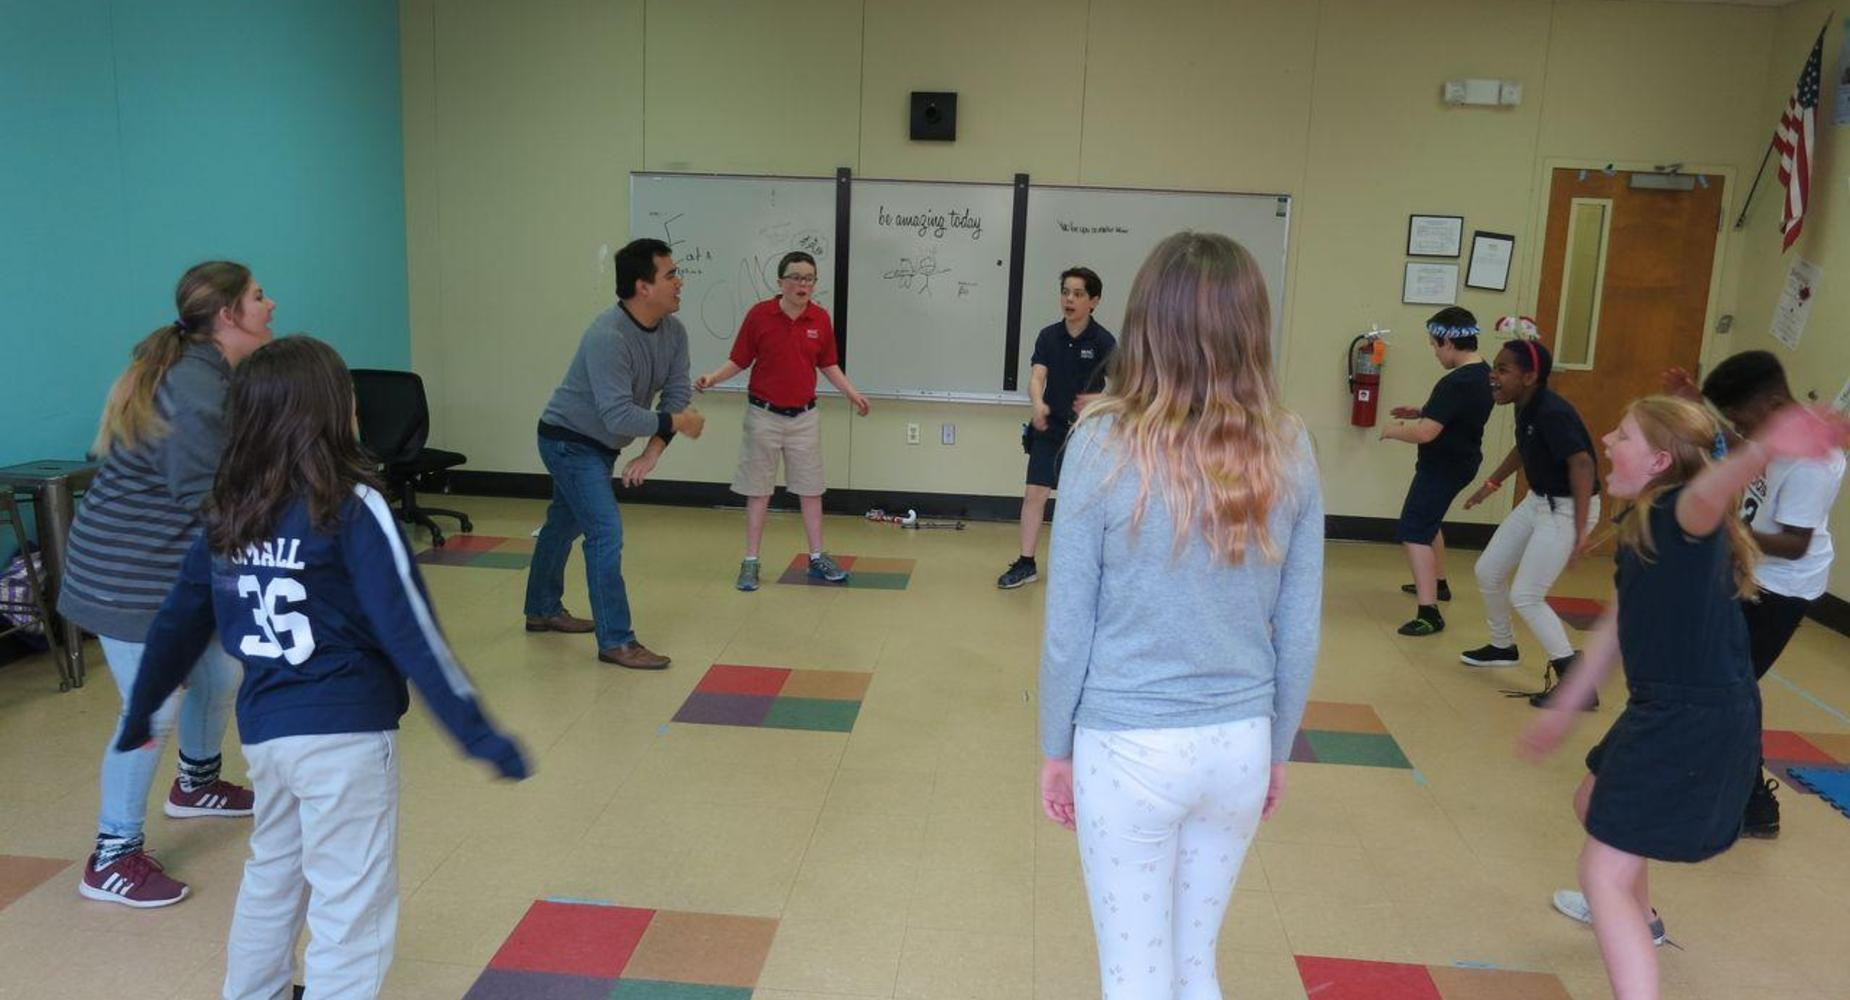 Theatre students playing a game